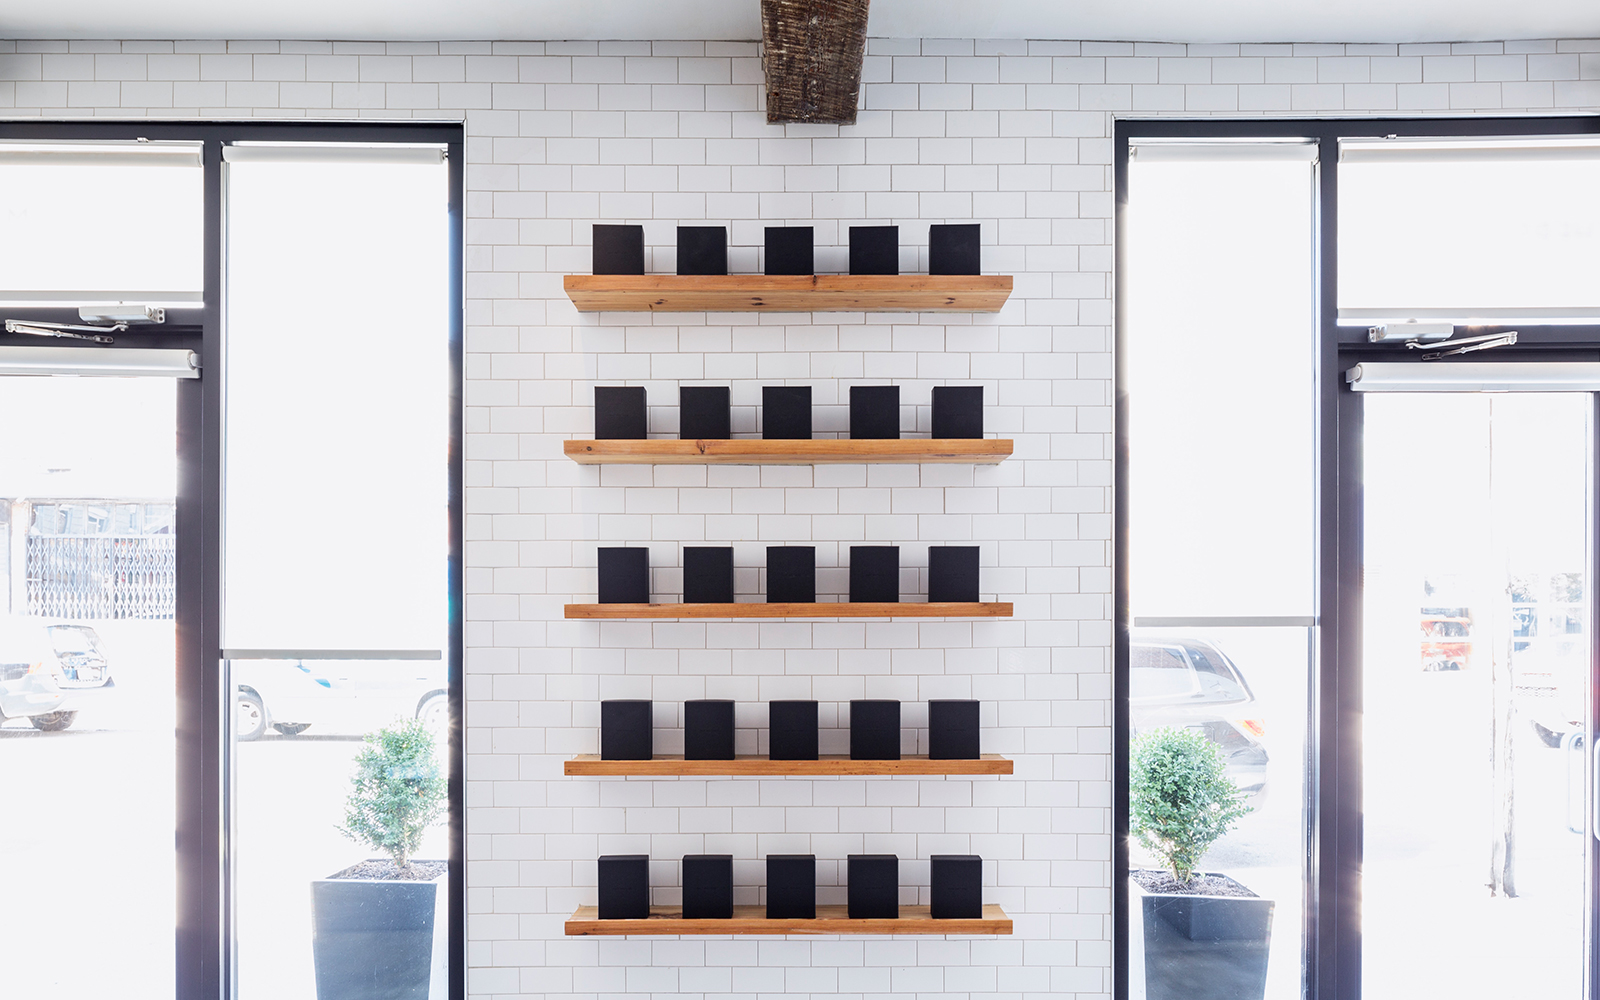 Brooklyn's Mast Brothers Chocolate Factory | Travel + Leisure